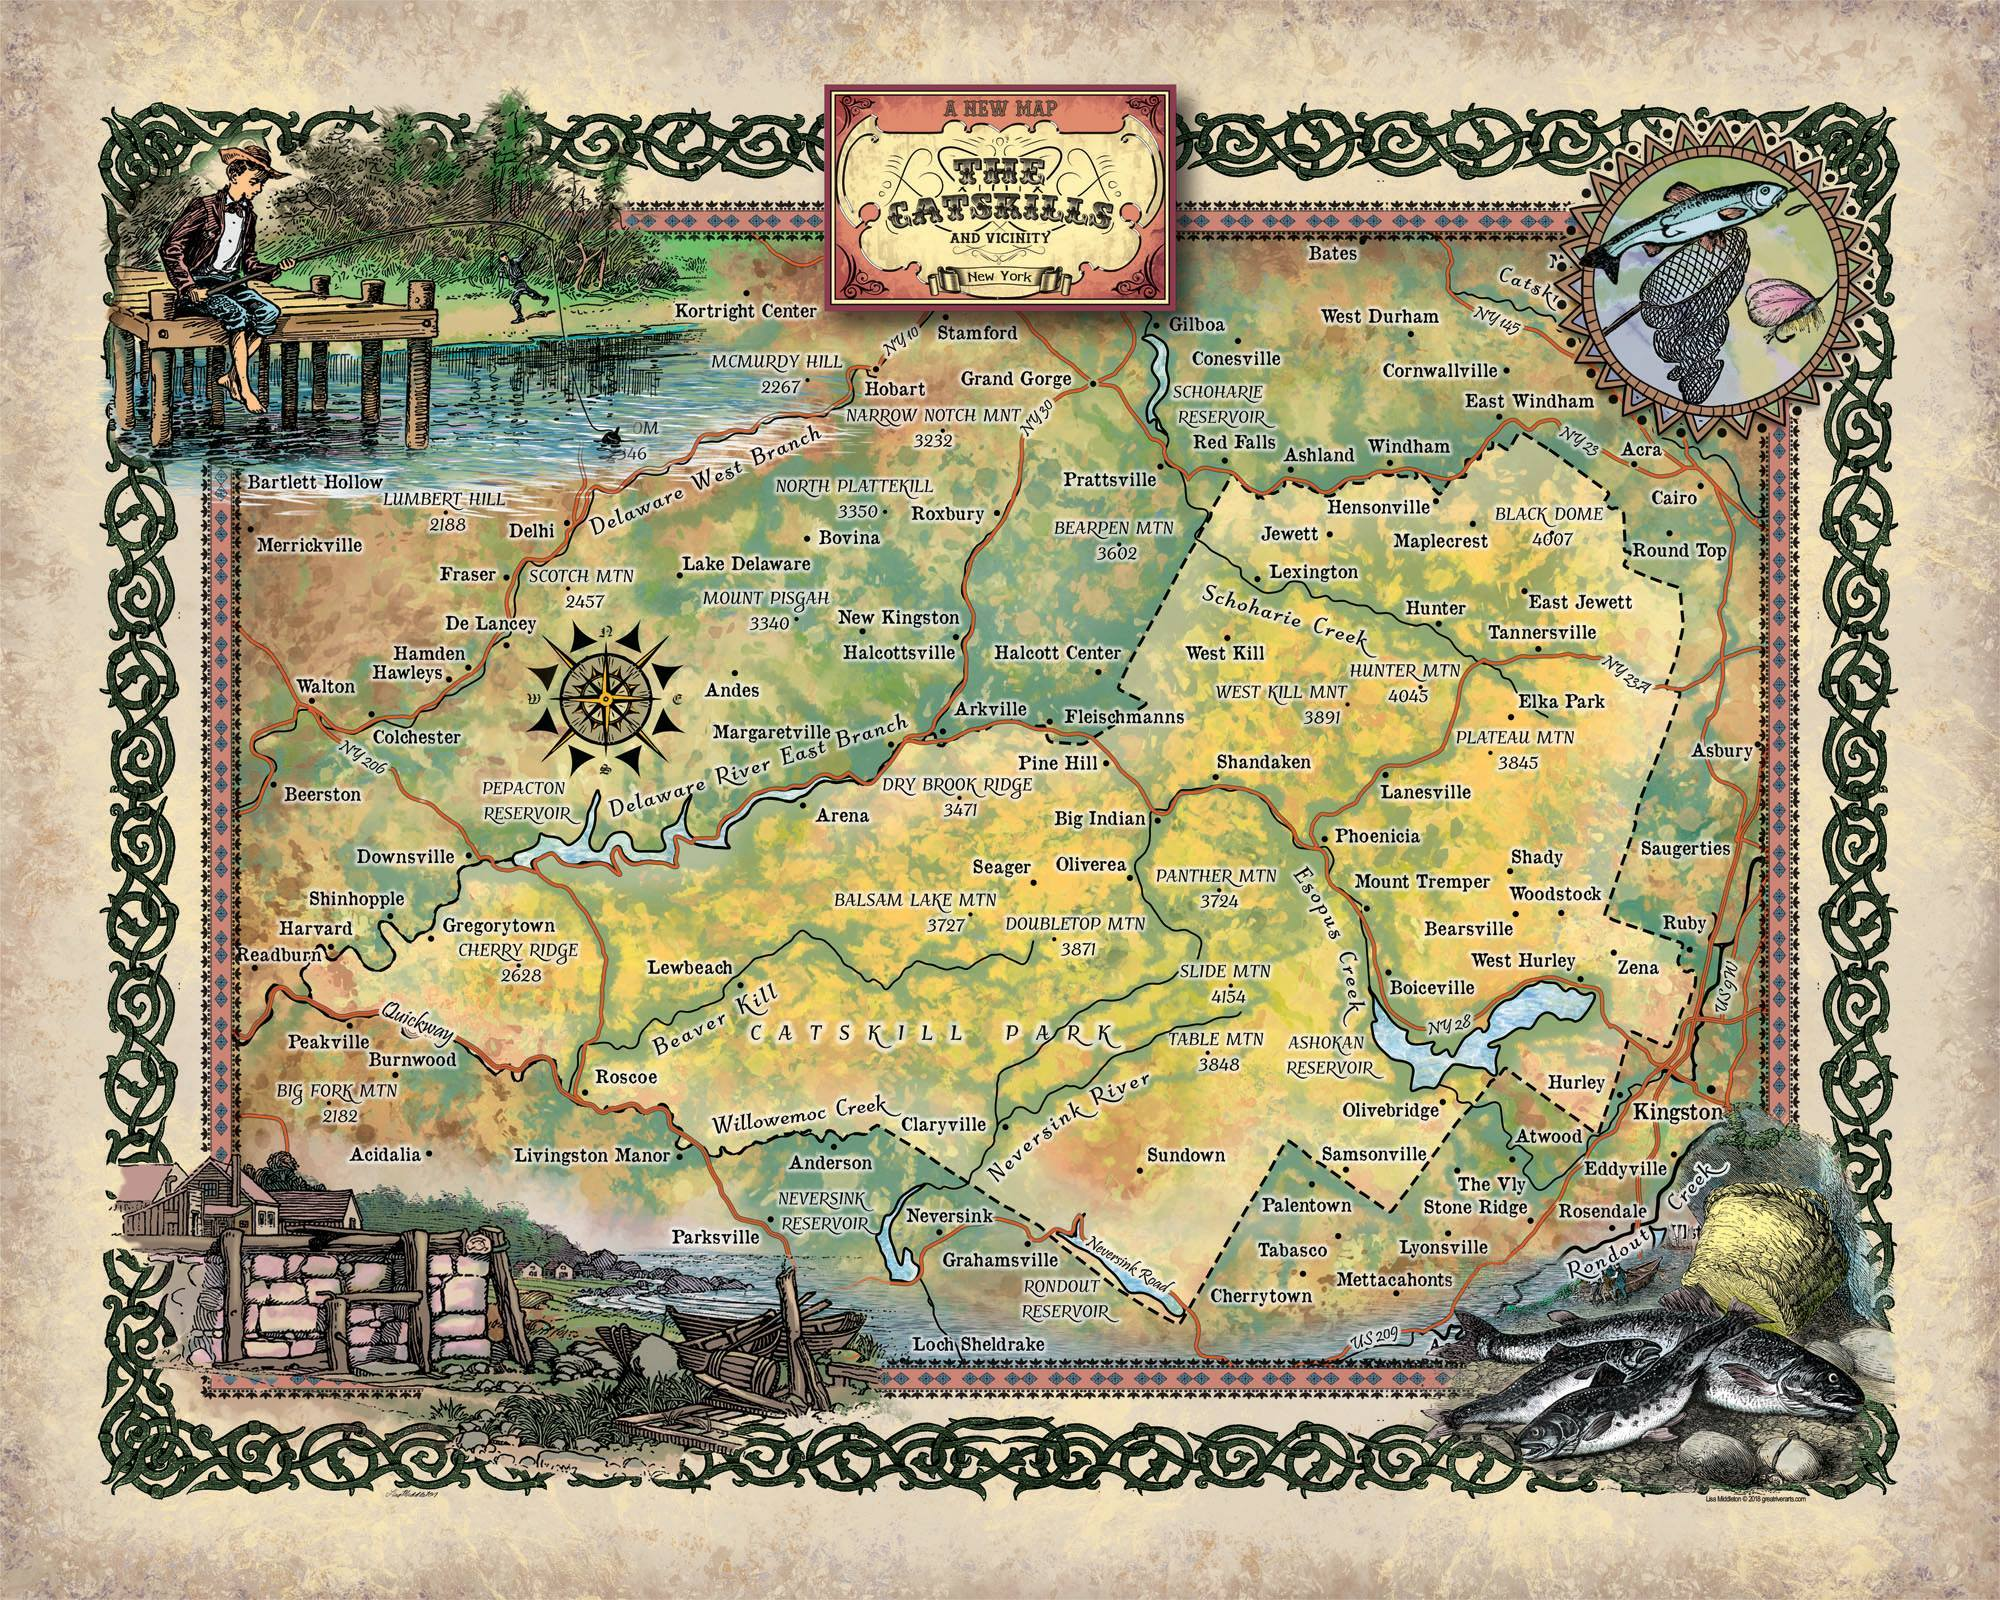 Travel Map Feature: Catskills Region - Great River Arts on lake placid, sierra nevada, great smoky mountains, kaaterskill falls map, sullivan county, capital district map, berkshires map, woodstock festival, allegheny plateau, green mountains, bemus point map, slide mountain, adirondack mountains, the finger lakes map, monticello map, watertown map, greater nyc map, catskill state park, wayne county ny snowmobile trail map, nyc watershed map, hudson river, kaaterskill falls, mount mitchell, brownsville map, taconic mountains map, delaware river, lafayette map, hudson valley, white mountains, appalachian mountains, lake charles map, charlottesville map, abilene map, amherst map, borscht belt, eastern ny map, morgantown map, eastern wv map,